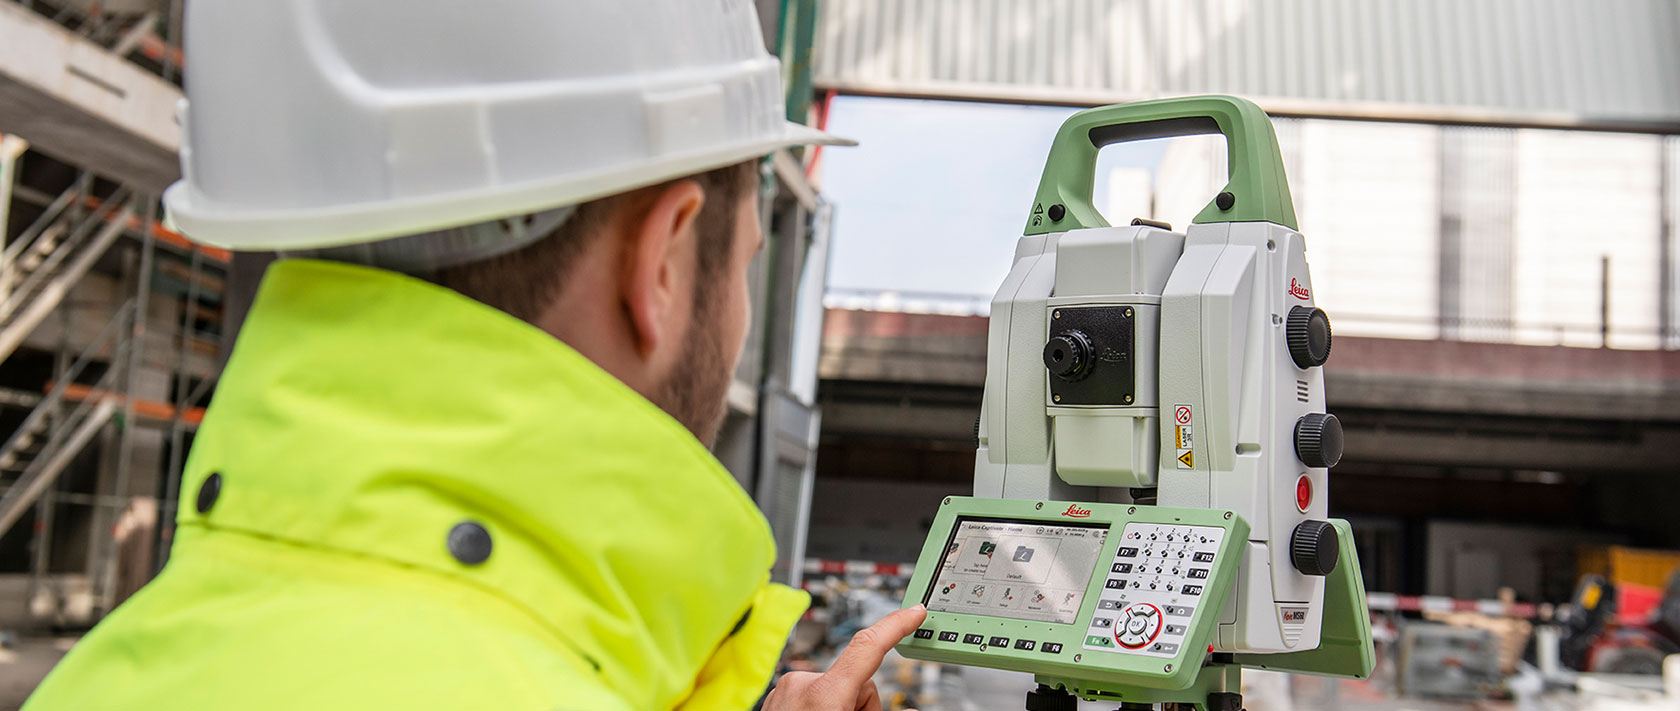 Ask the expert - total stations